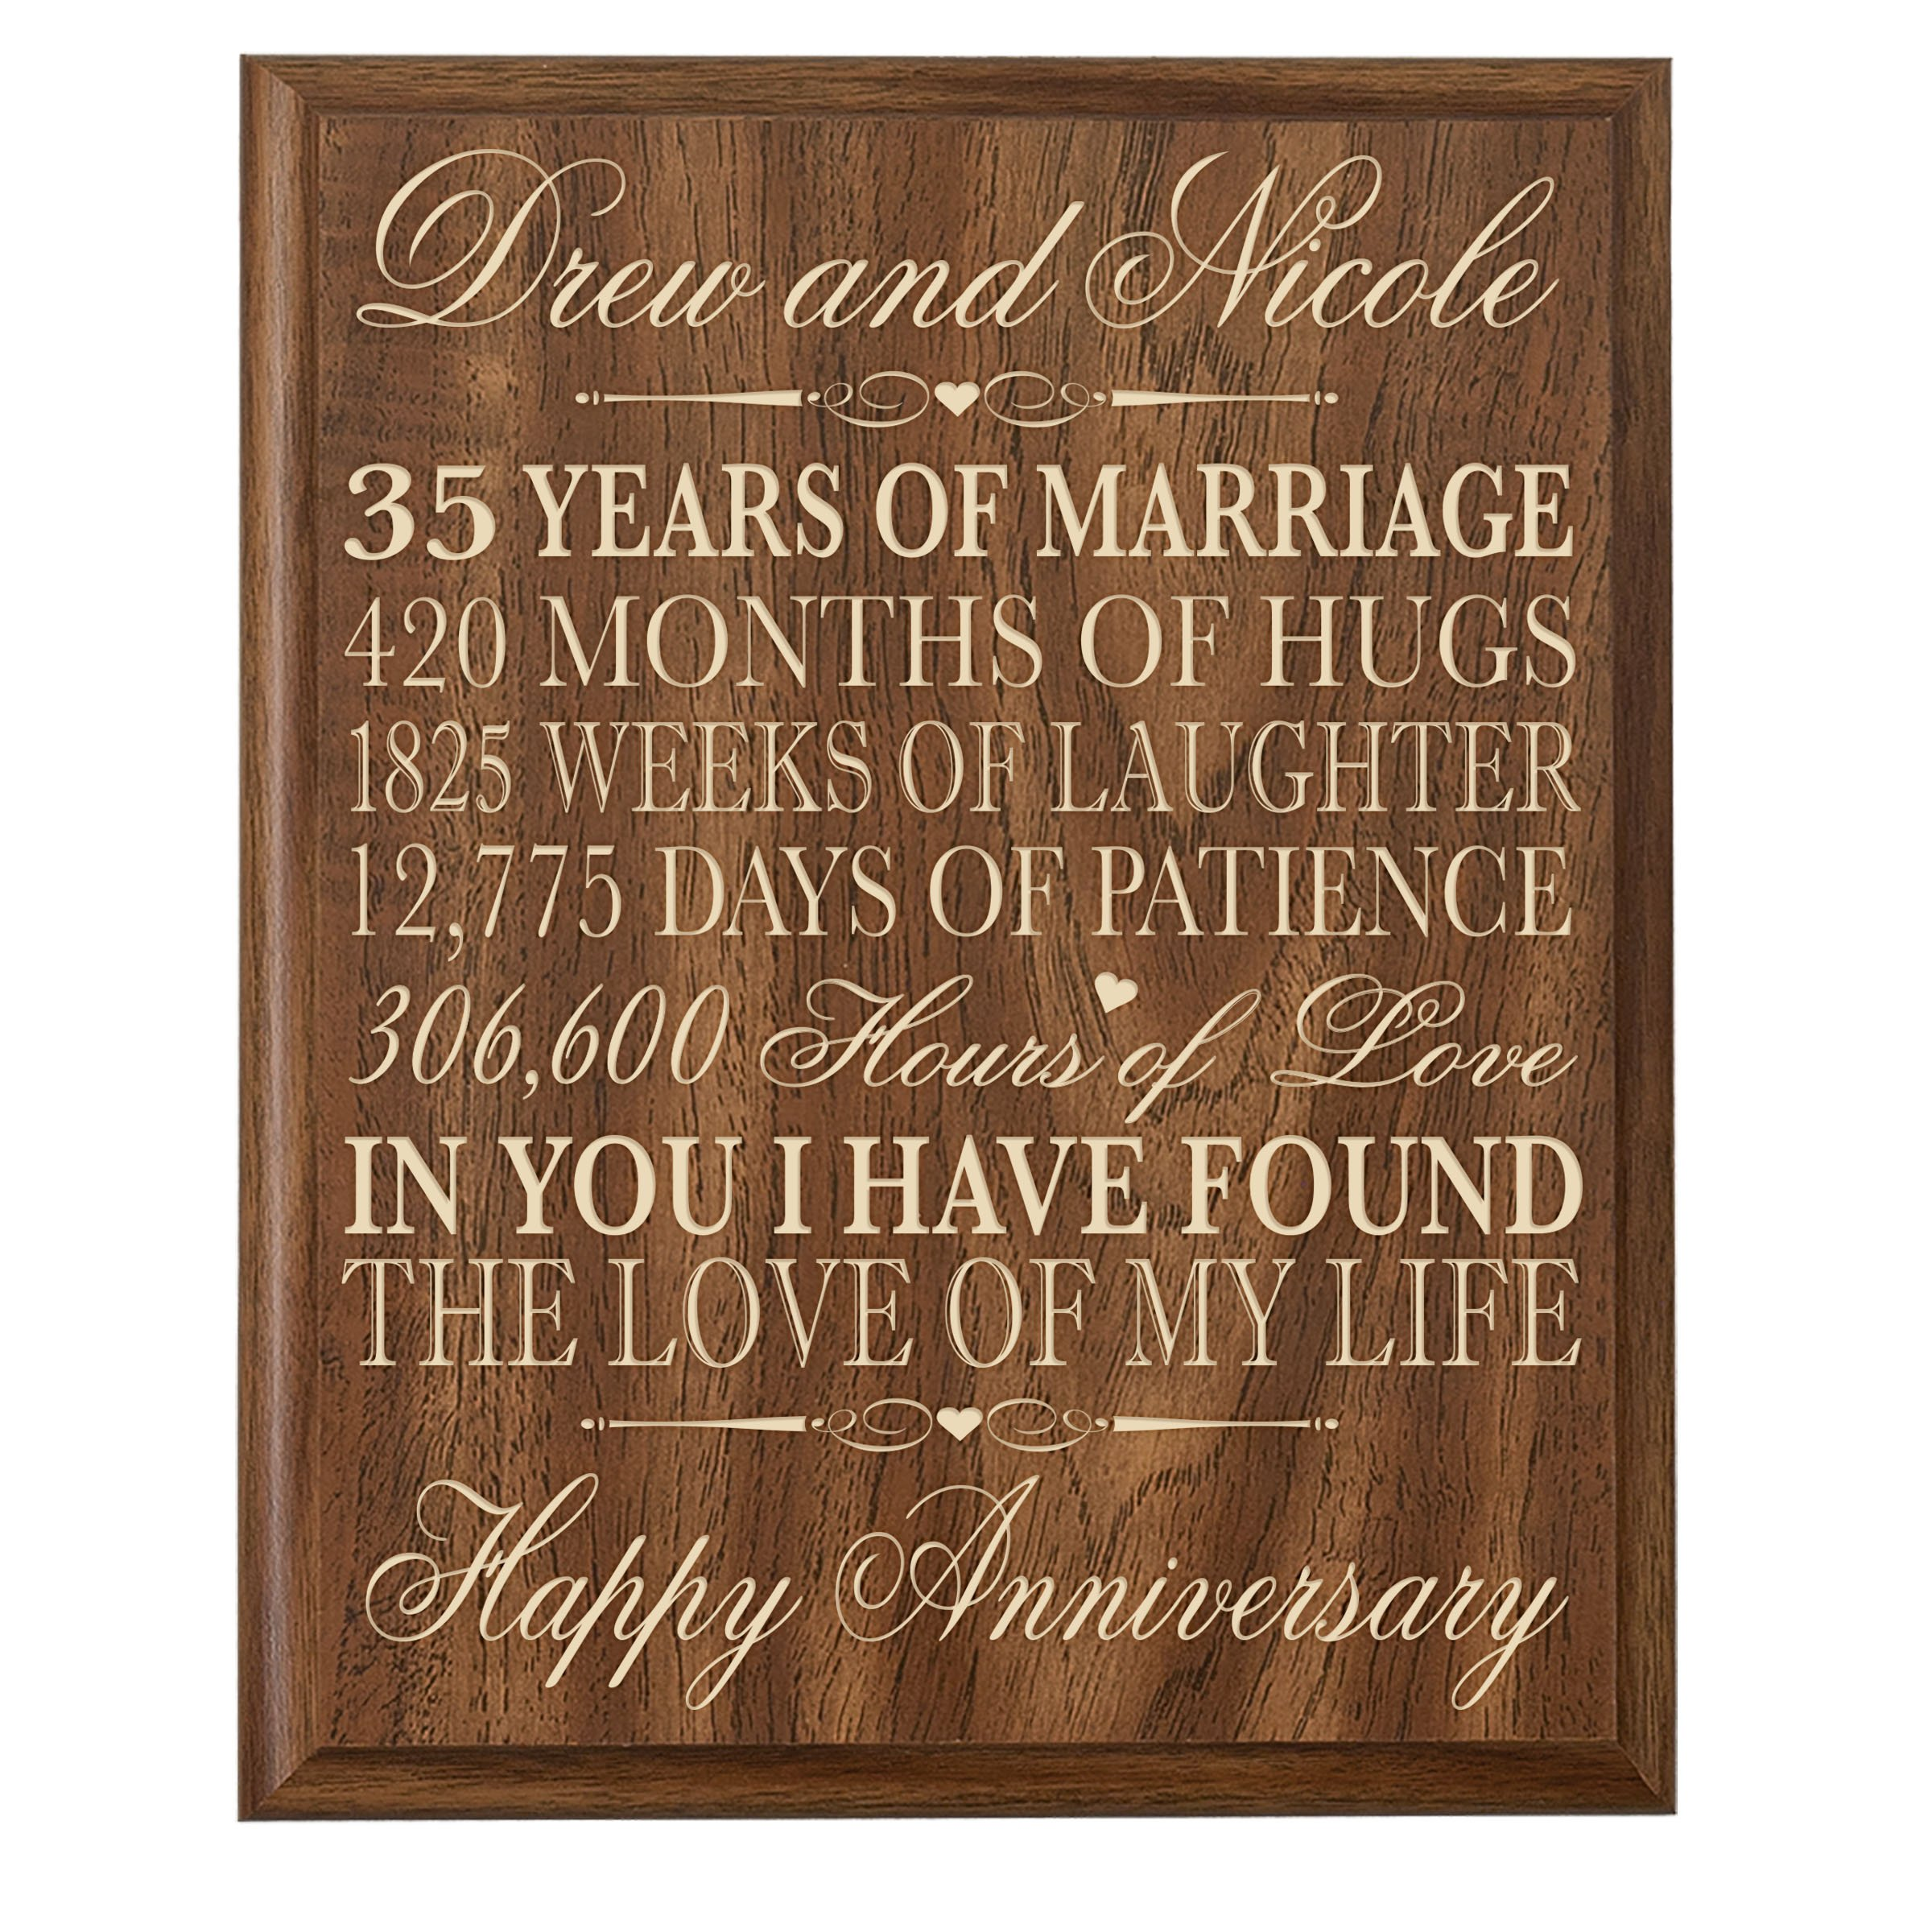 Personalized 35th Wedding Anniversary Gift For Custom Made Gifts Her